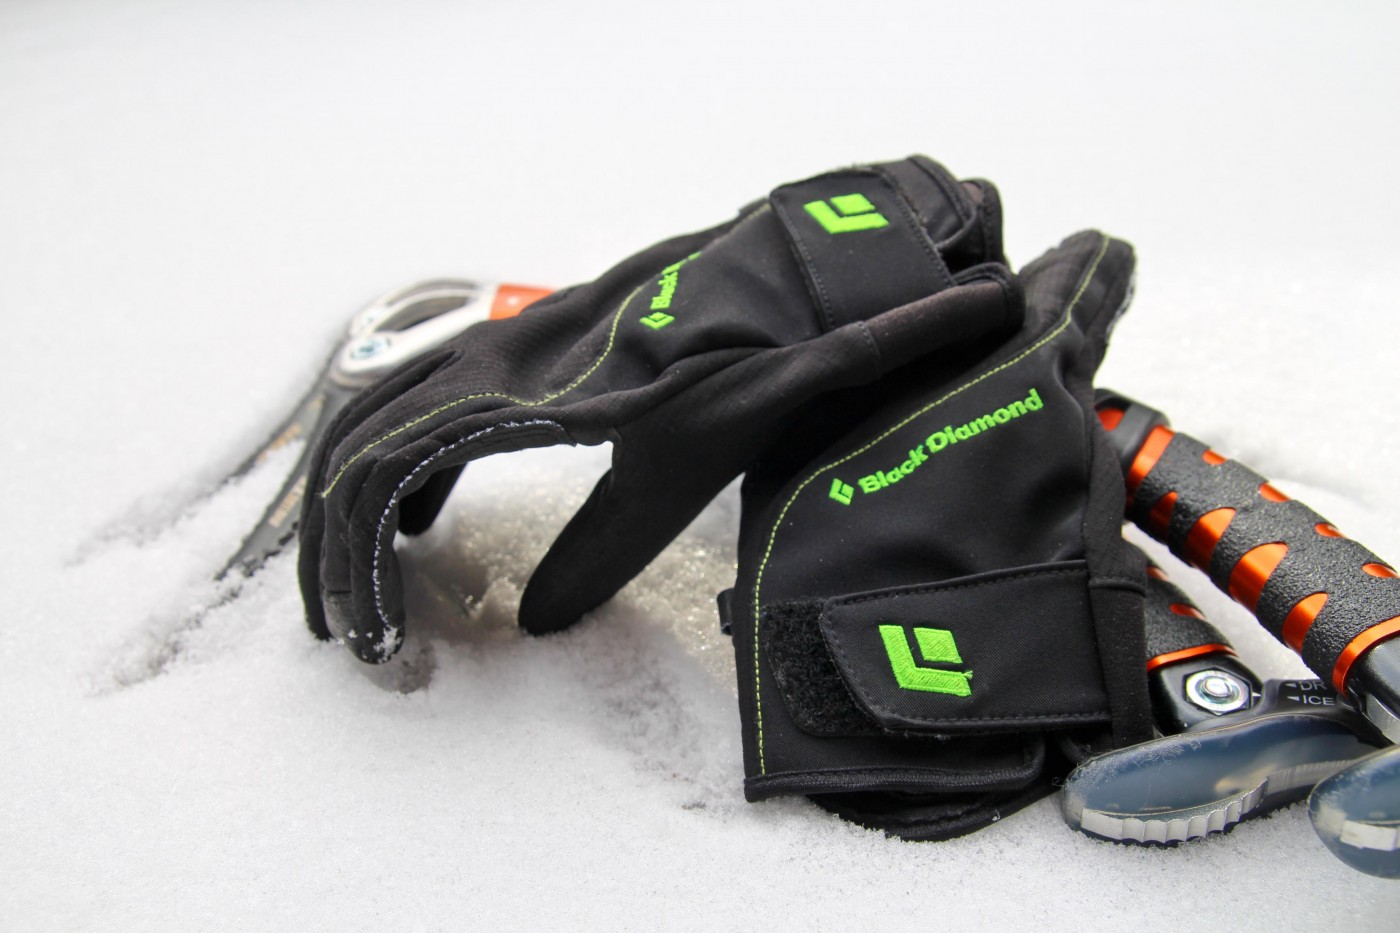 Field Tested Review: Black Diamond Torque Glove